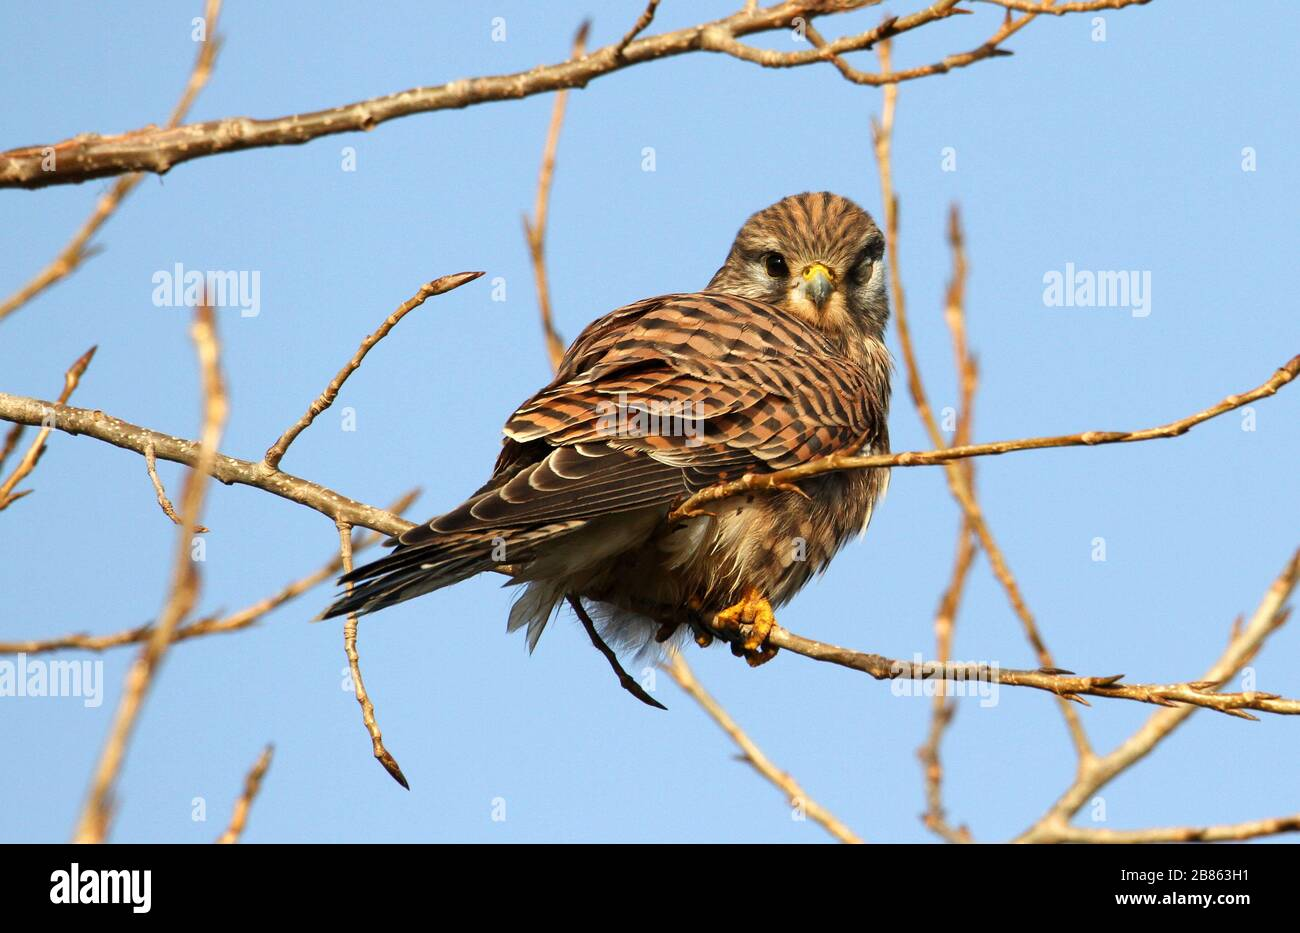 Juvenile Kestrel, Falco tinnunculus, blind in the left eye, perched on a branch against a blue sky. Taken at Stanpit Marsh UK Stock Photo